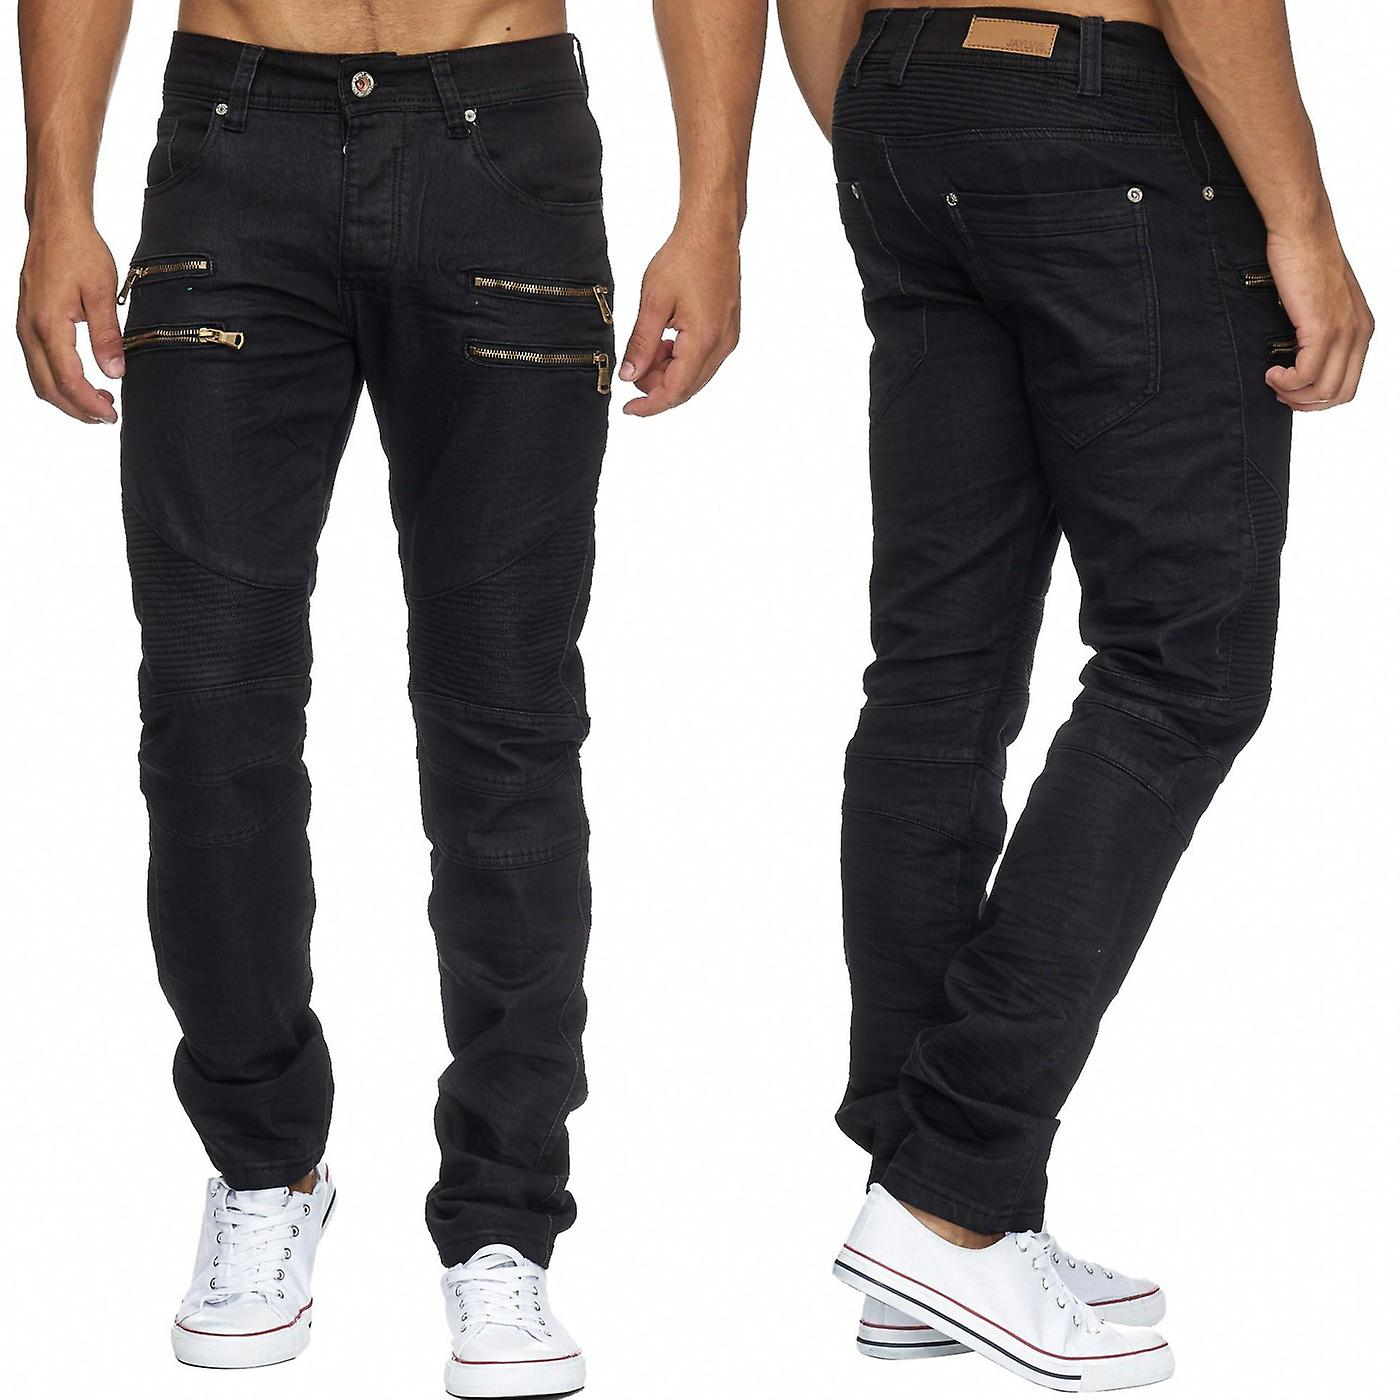 Men s Jeans Glossy CLARENCE Coated Denim Black Fabric Trousers Pants ... c6a6256022321